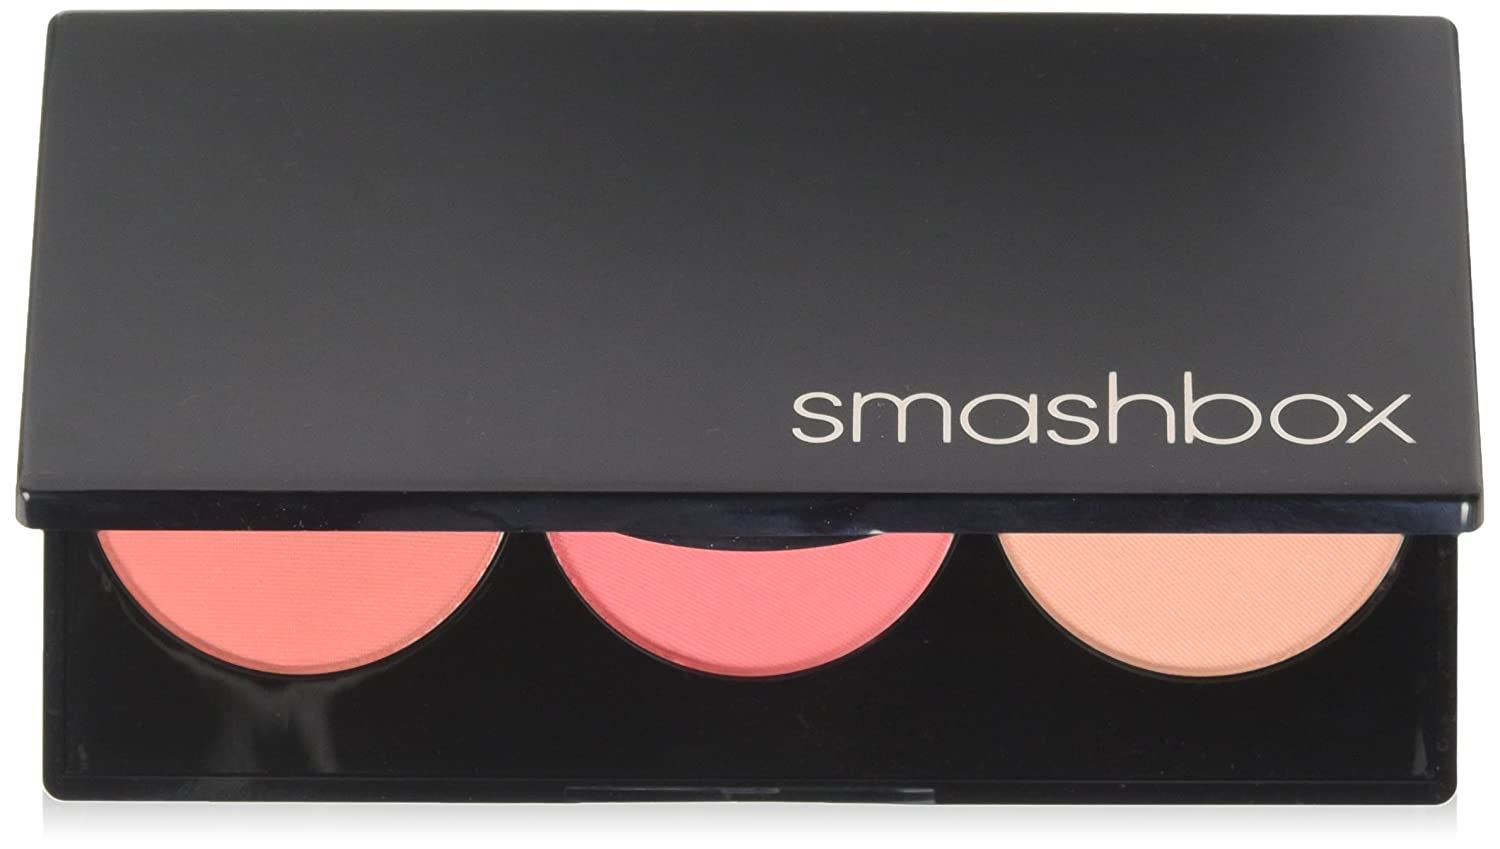 Smashbox L.A. Lights Blush & Highlight Culver City Coral Palette PerfumeWorldWide Inc. 0607710048553